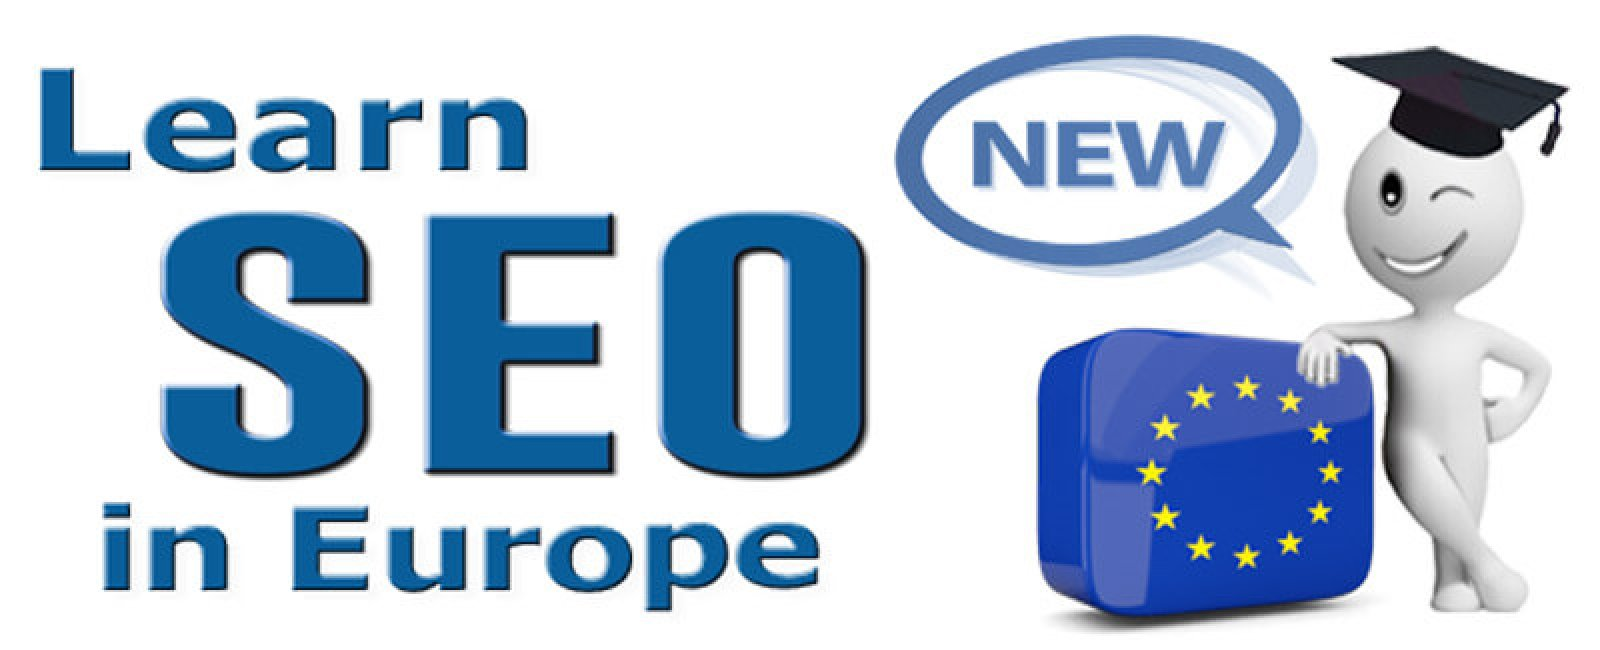 Group learning seo in Europe